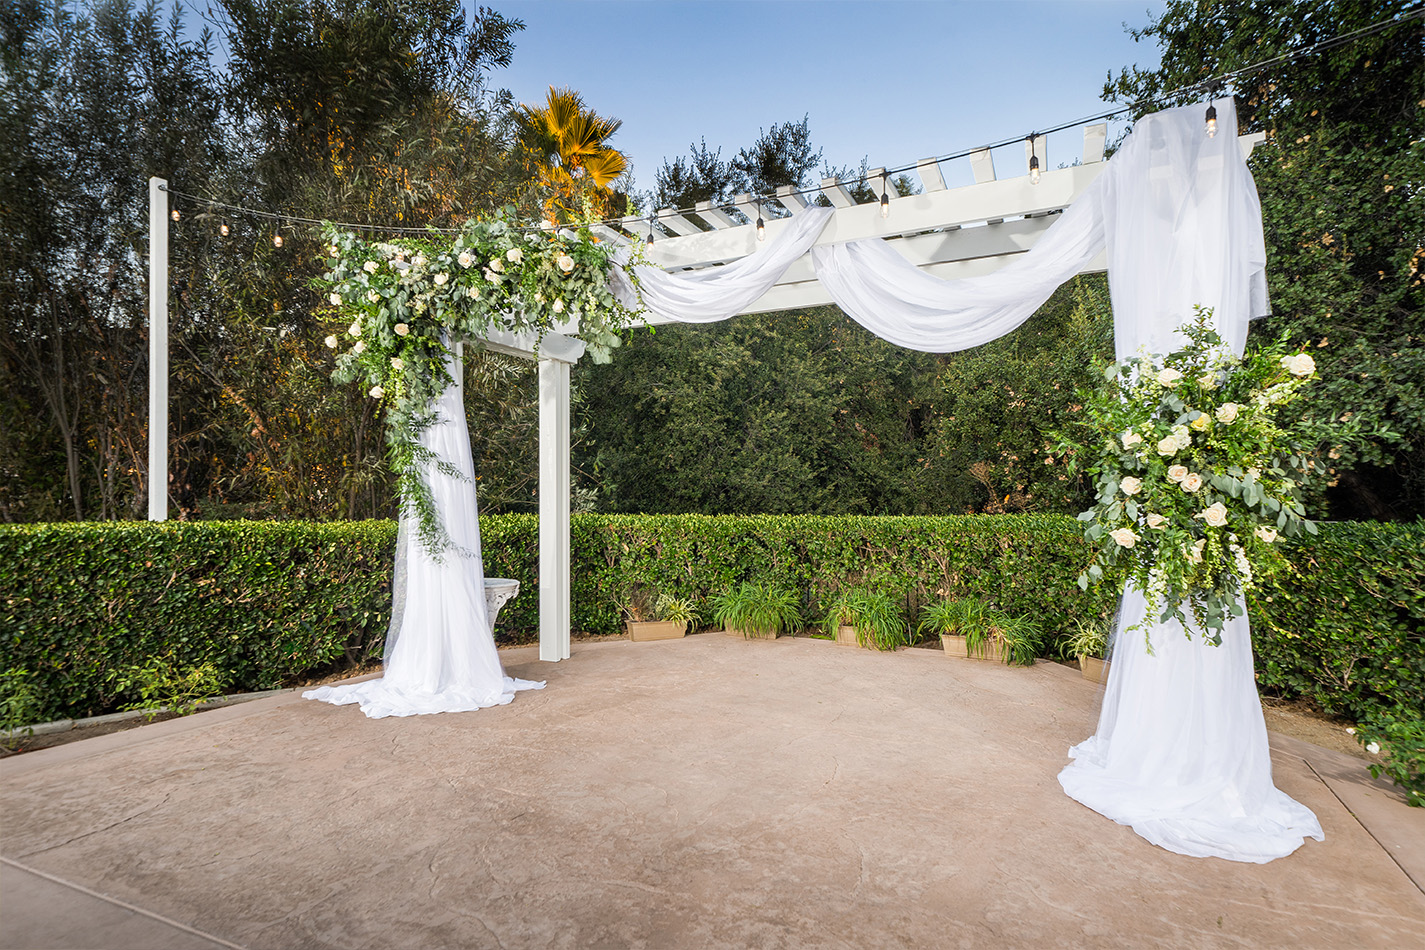 Ceremony arbor - Sierra La Verne - La Verne, California - Claremont Area - Los Angeles County - Wedgewood Weddings